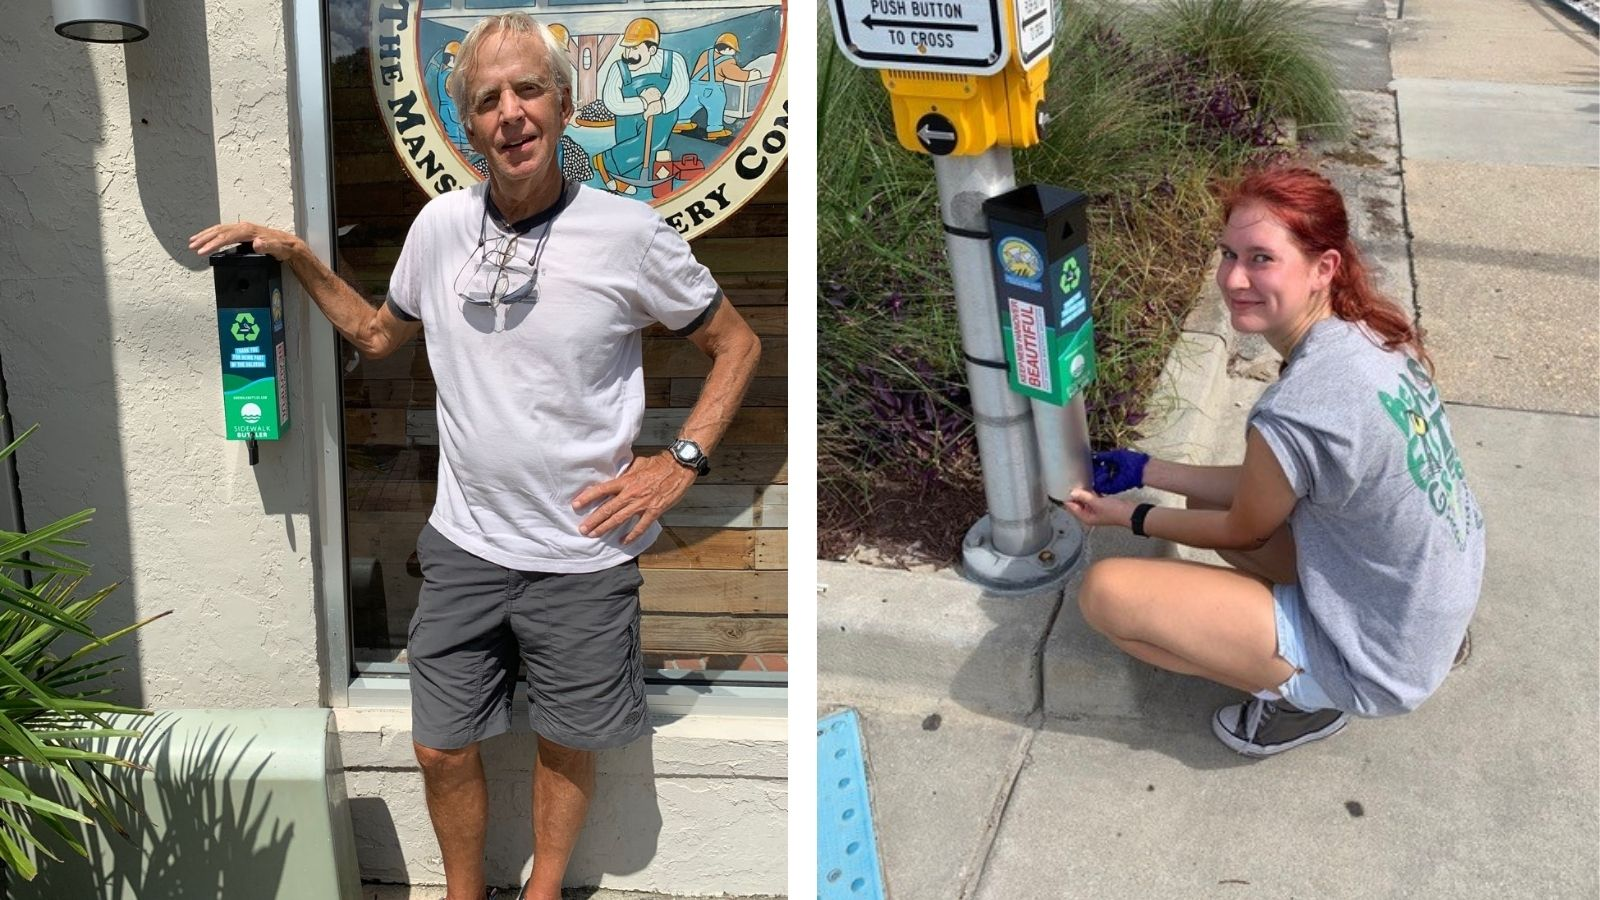 Keep New Hanover Beautiful Collects, Recycles One Million Cigarette Butts